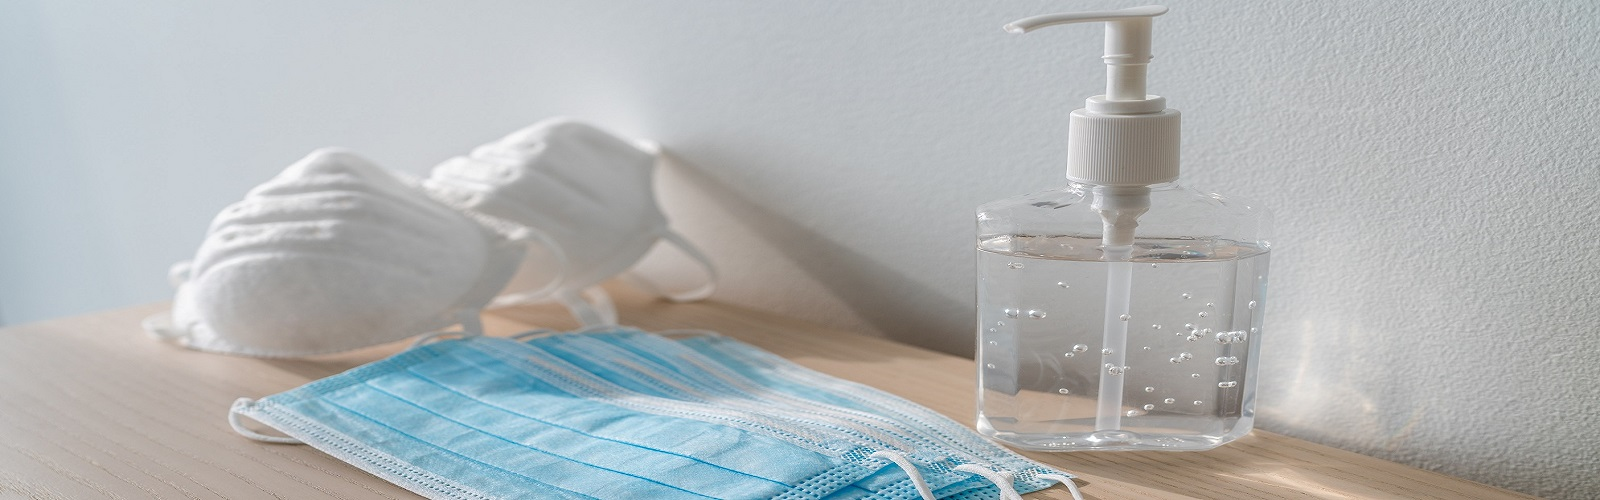 Disinfection is meant to protect, not harm!